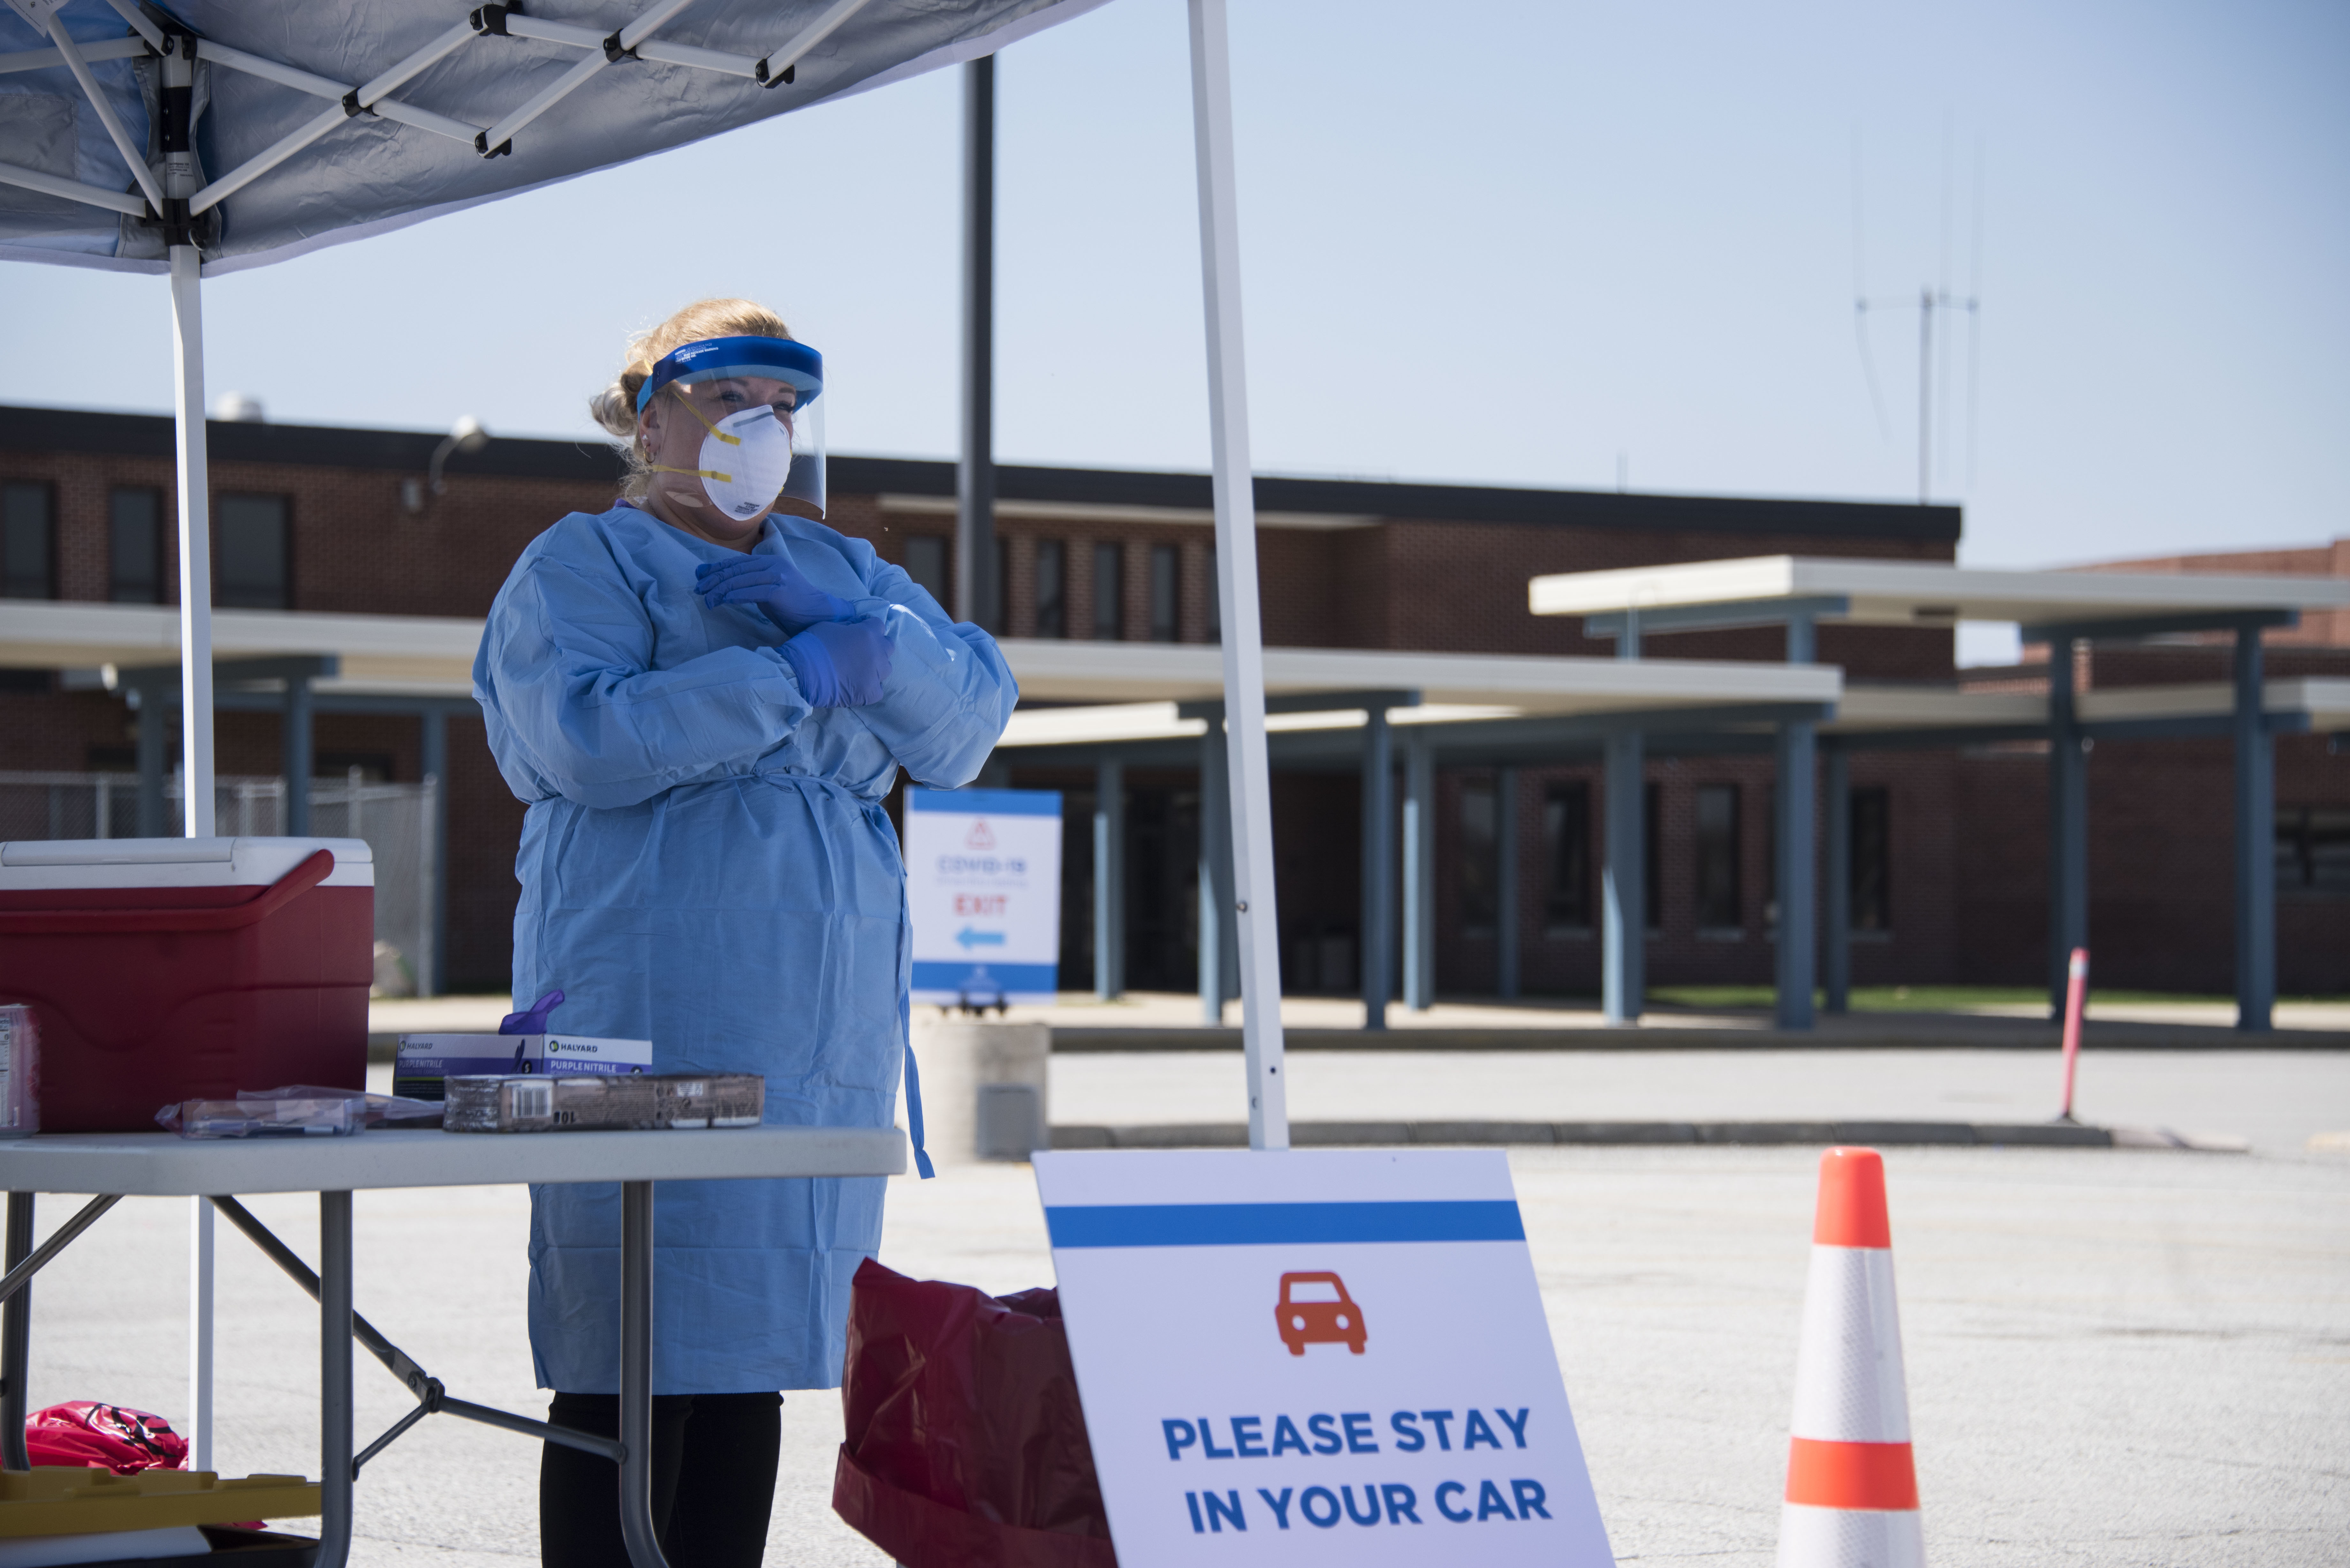 An Indiana State Department of Health nurse participates in a drive-thru COVID-19 testing site at Merrillville High School, Merrillville, Indiana on April 8, 2020.